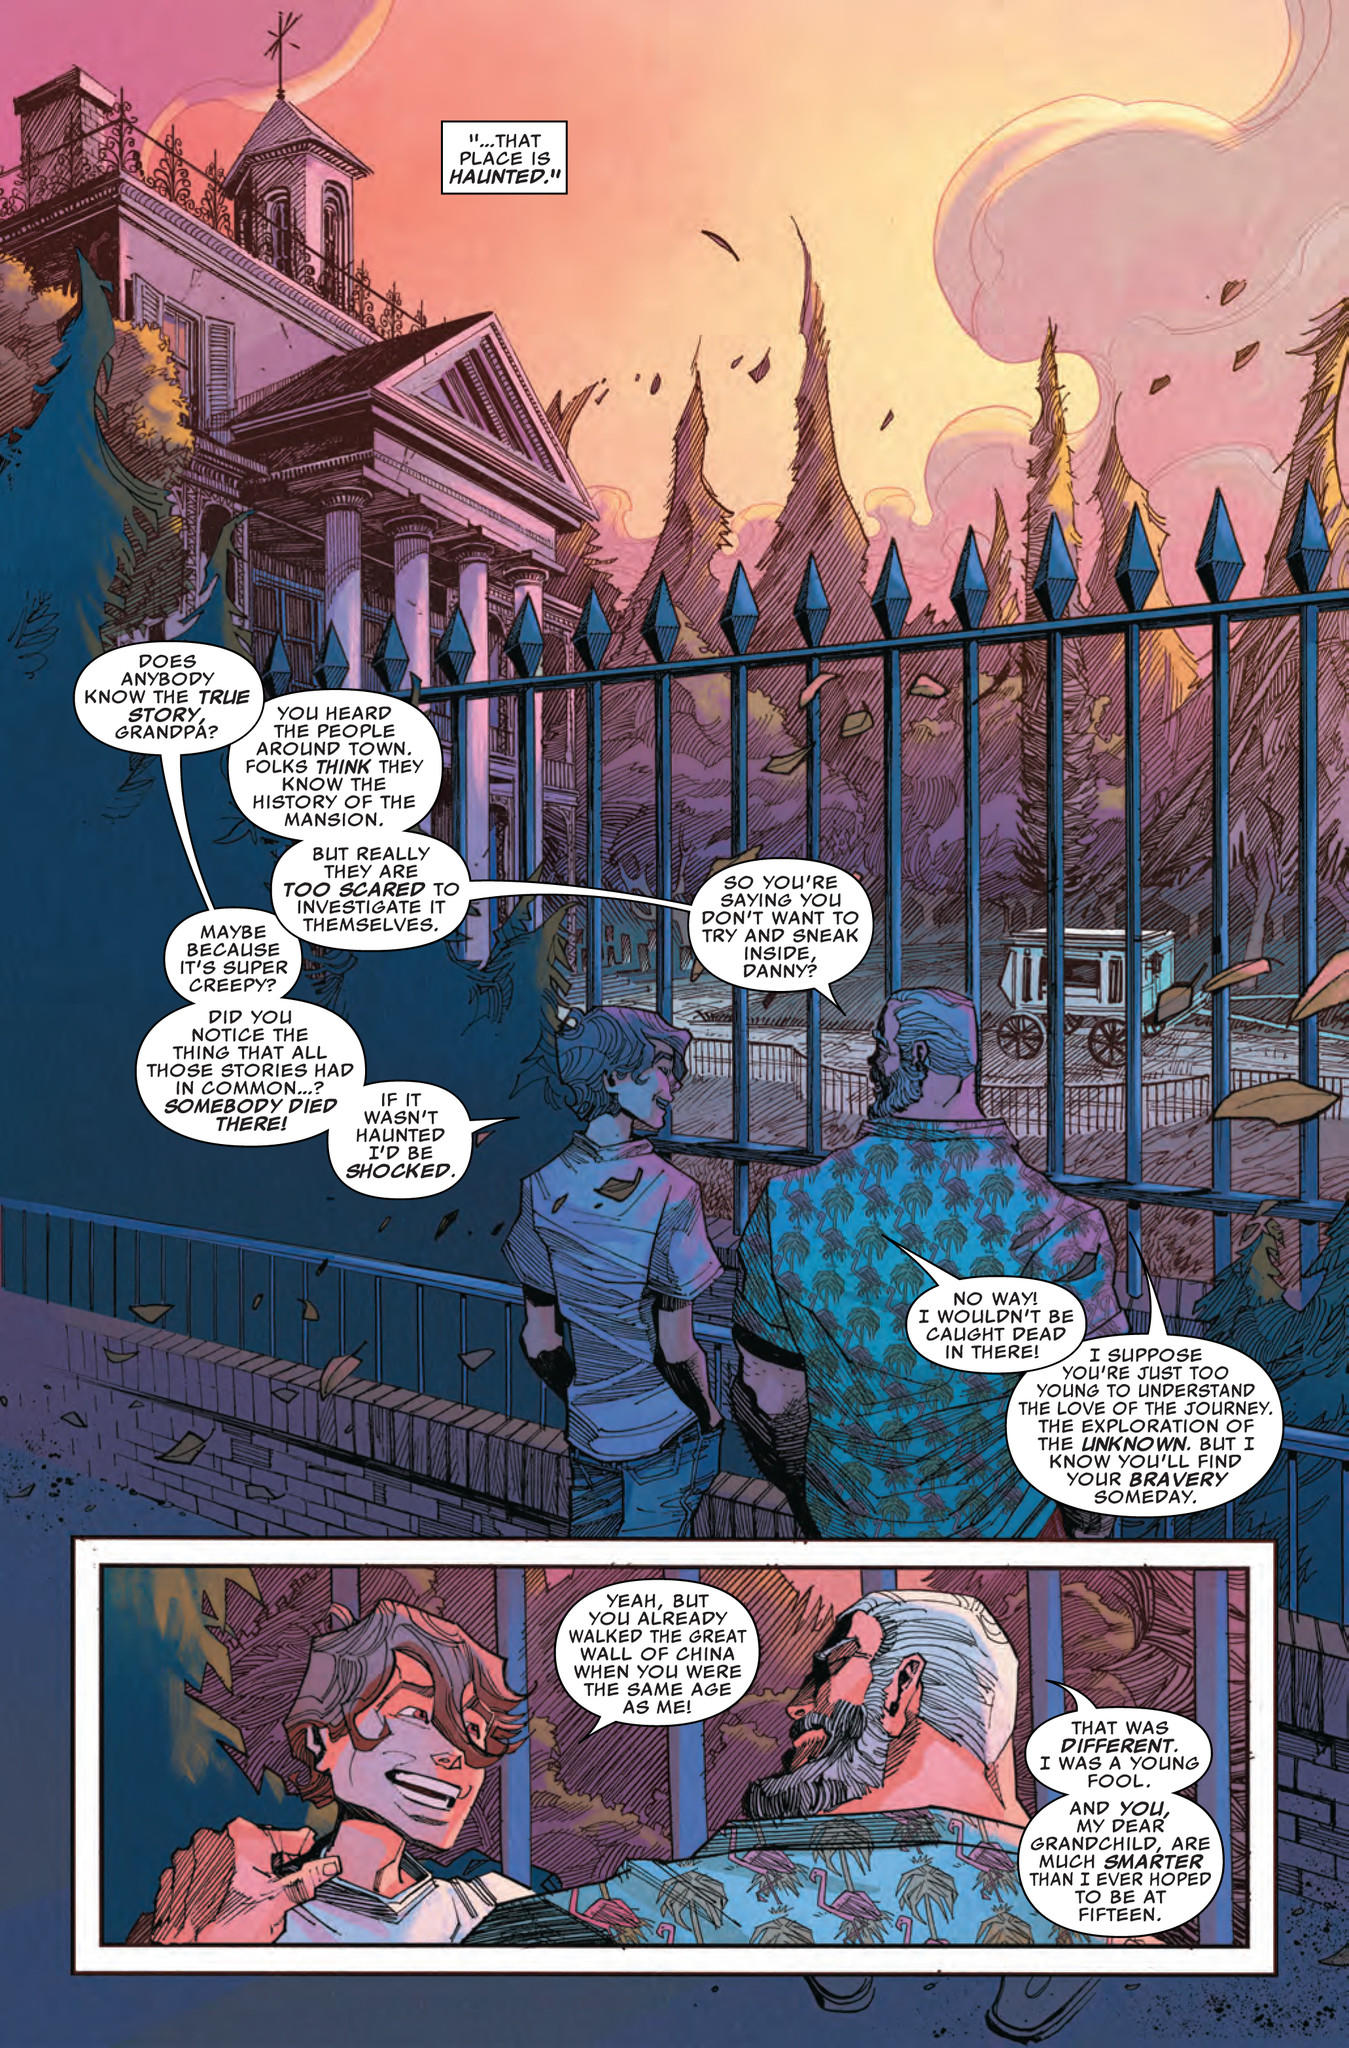 Good Marvel us ucHaunted Mansion ud tackles how to conquer one us fears Marvel Comics